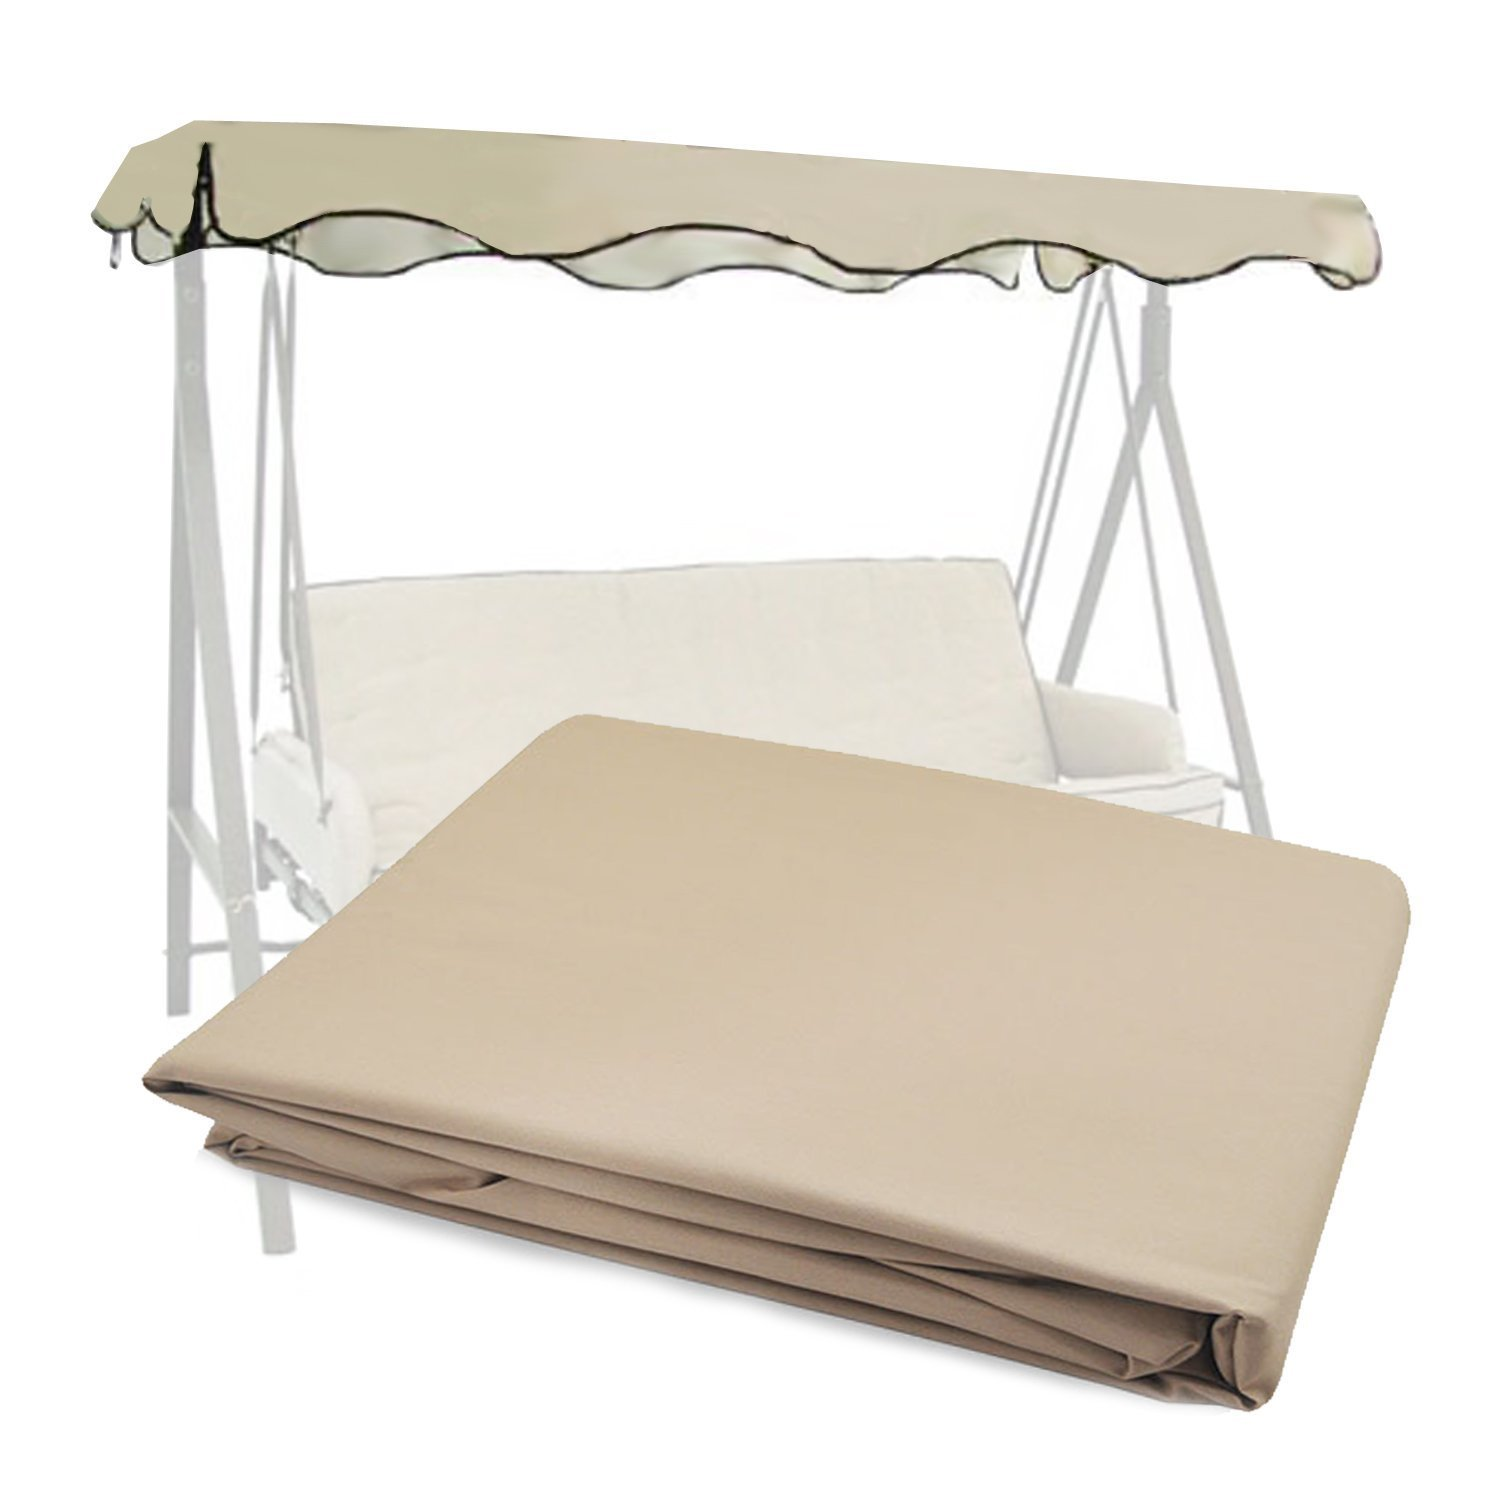 :  Garden Winds Replacement Canopy Top for Lowe's Garden Treasures Model SC-GSN and SC8844GSN Swing – Beige Color – Will Not Fit Any Other Models